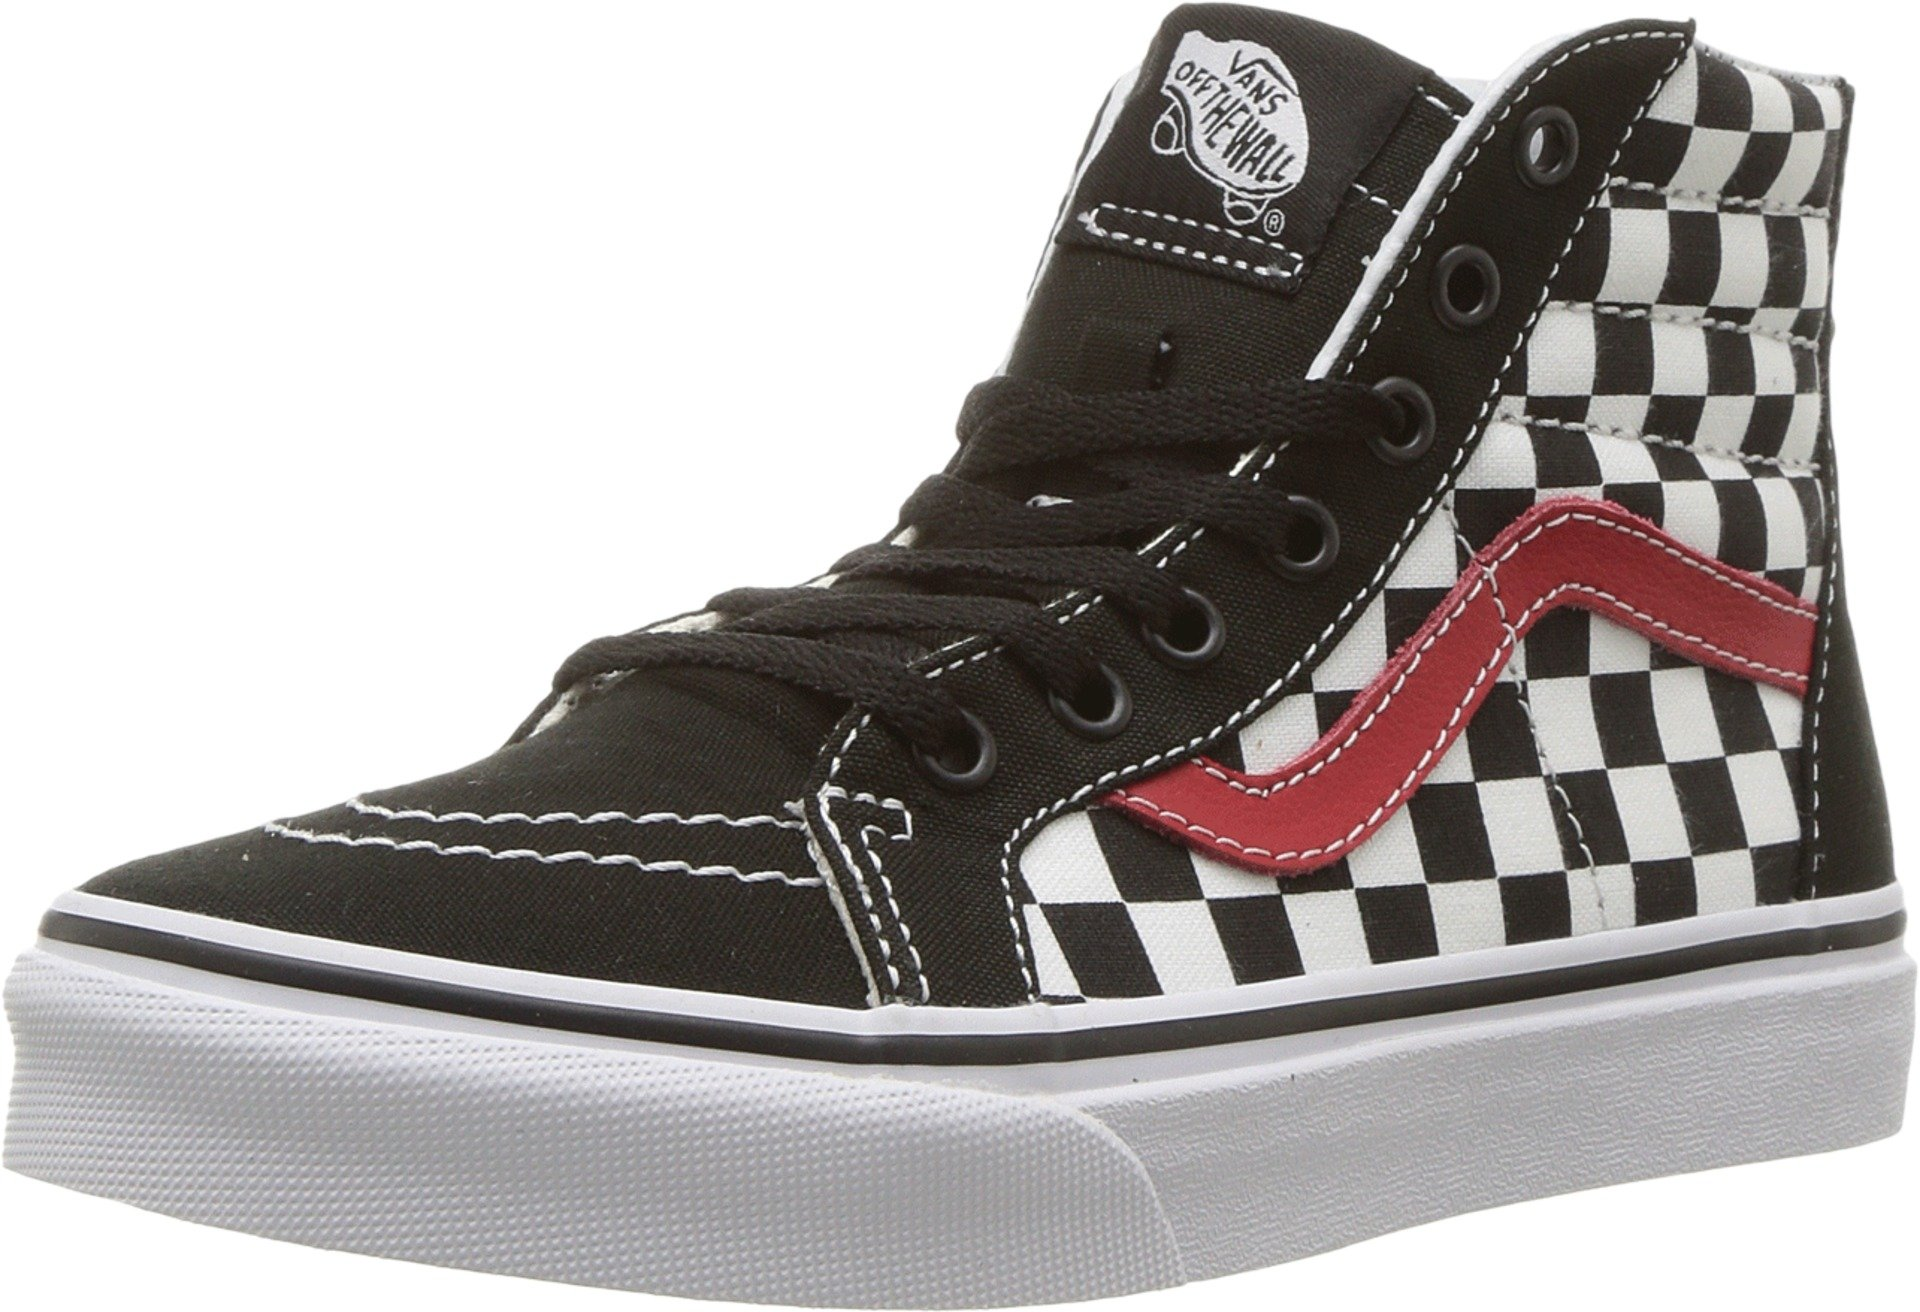 b618fc4a40 Galleon - Vans Kids K SK8-HI Zip Checkerboard Black RED White Size 13